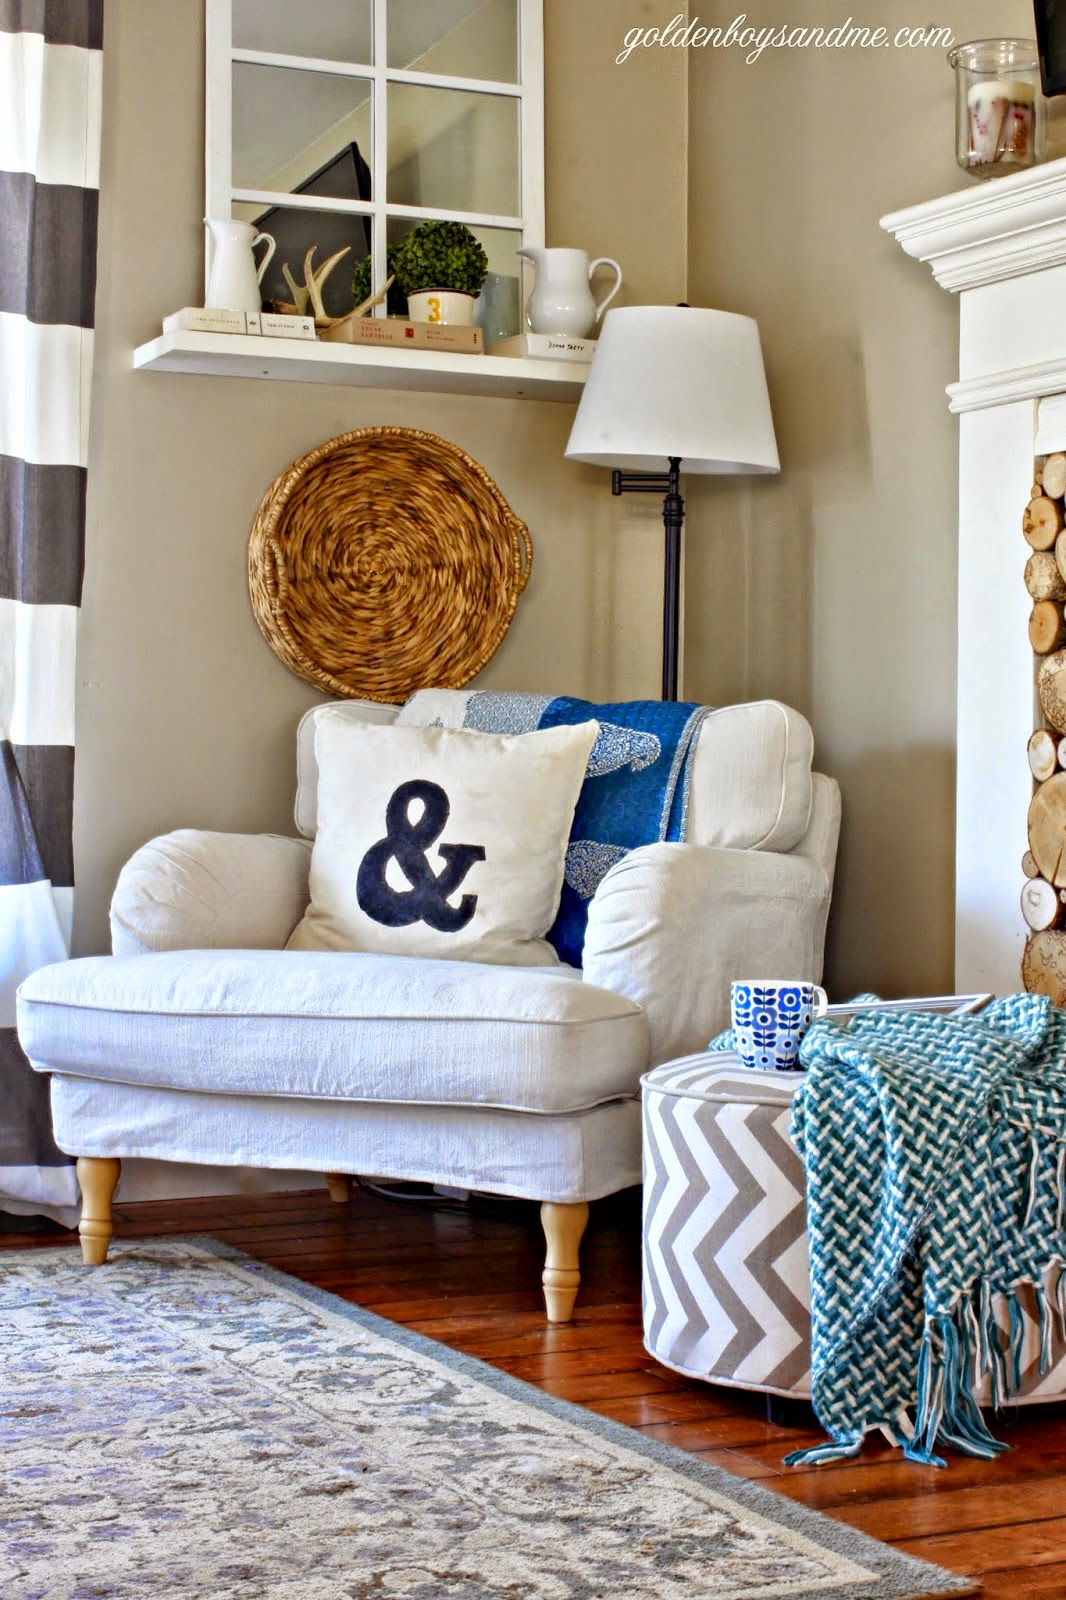 Living Room Furniture Designs In Nigeria: Golden Boys And Me: Living With Ikea Chairs (Real Life Review